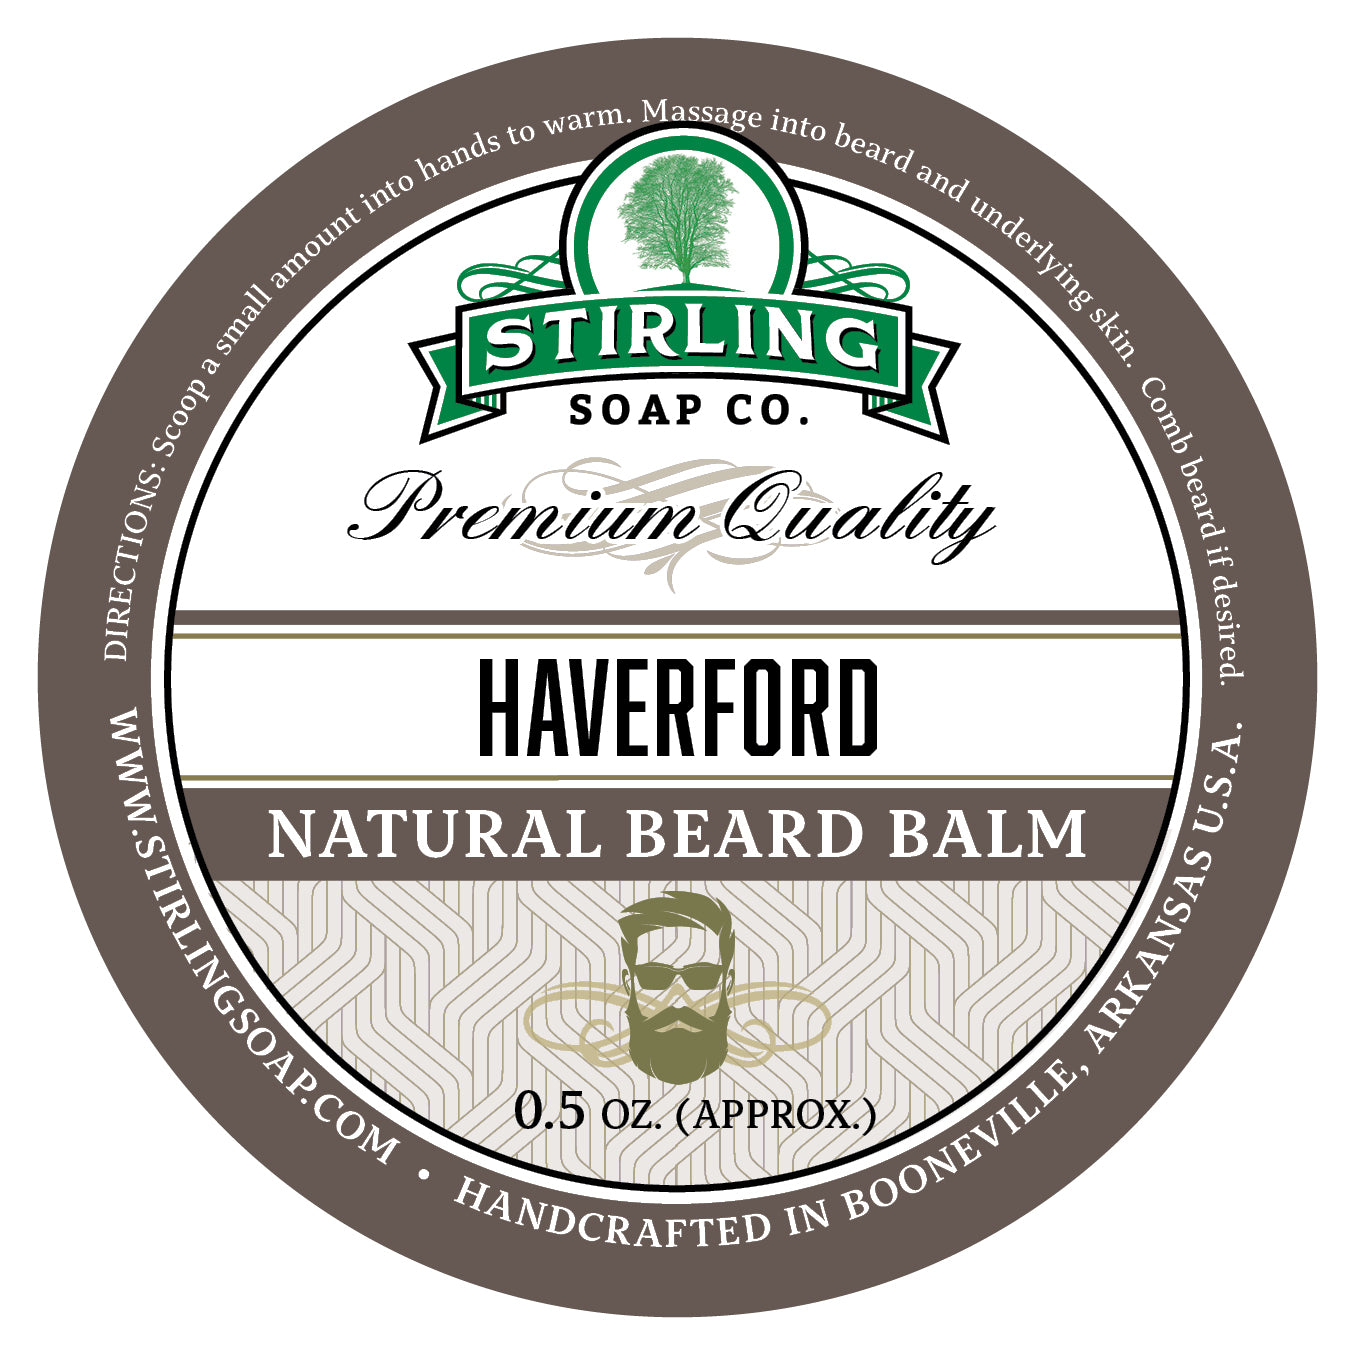 Haverford Beard Balm - 1/2oz